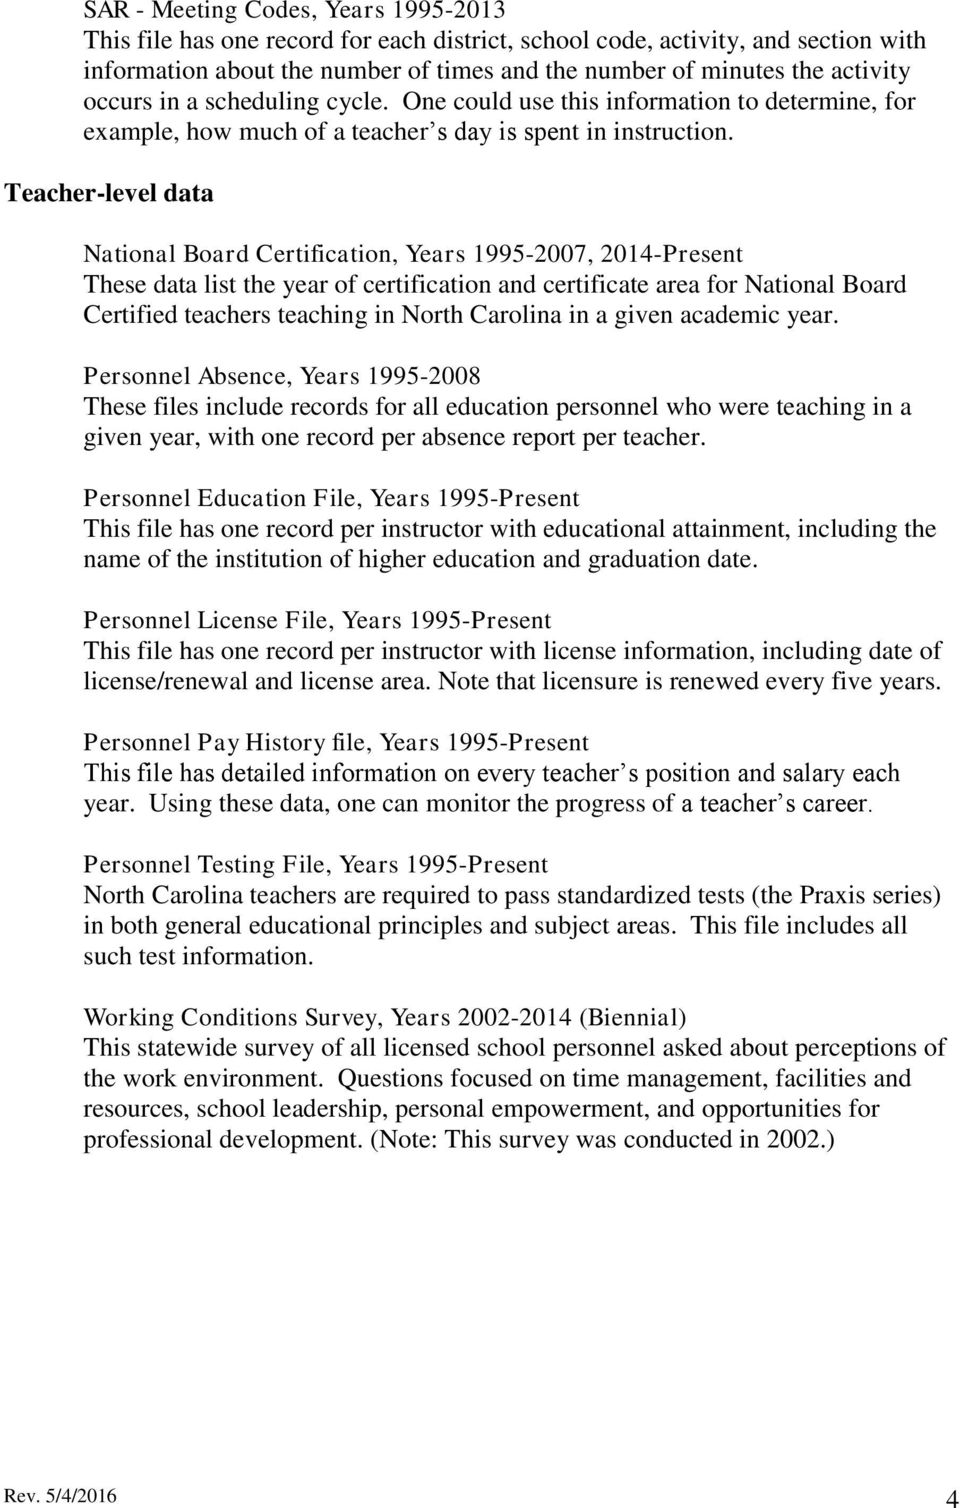 Teacher-level data National Board Certification, Years 1995-2007, 2014-Present These data list the year of certification and certificate area for National Board Certified teachers teaching in North